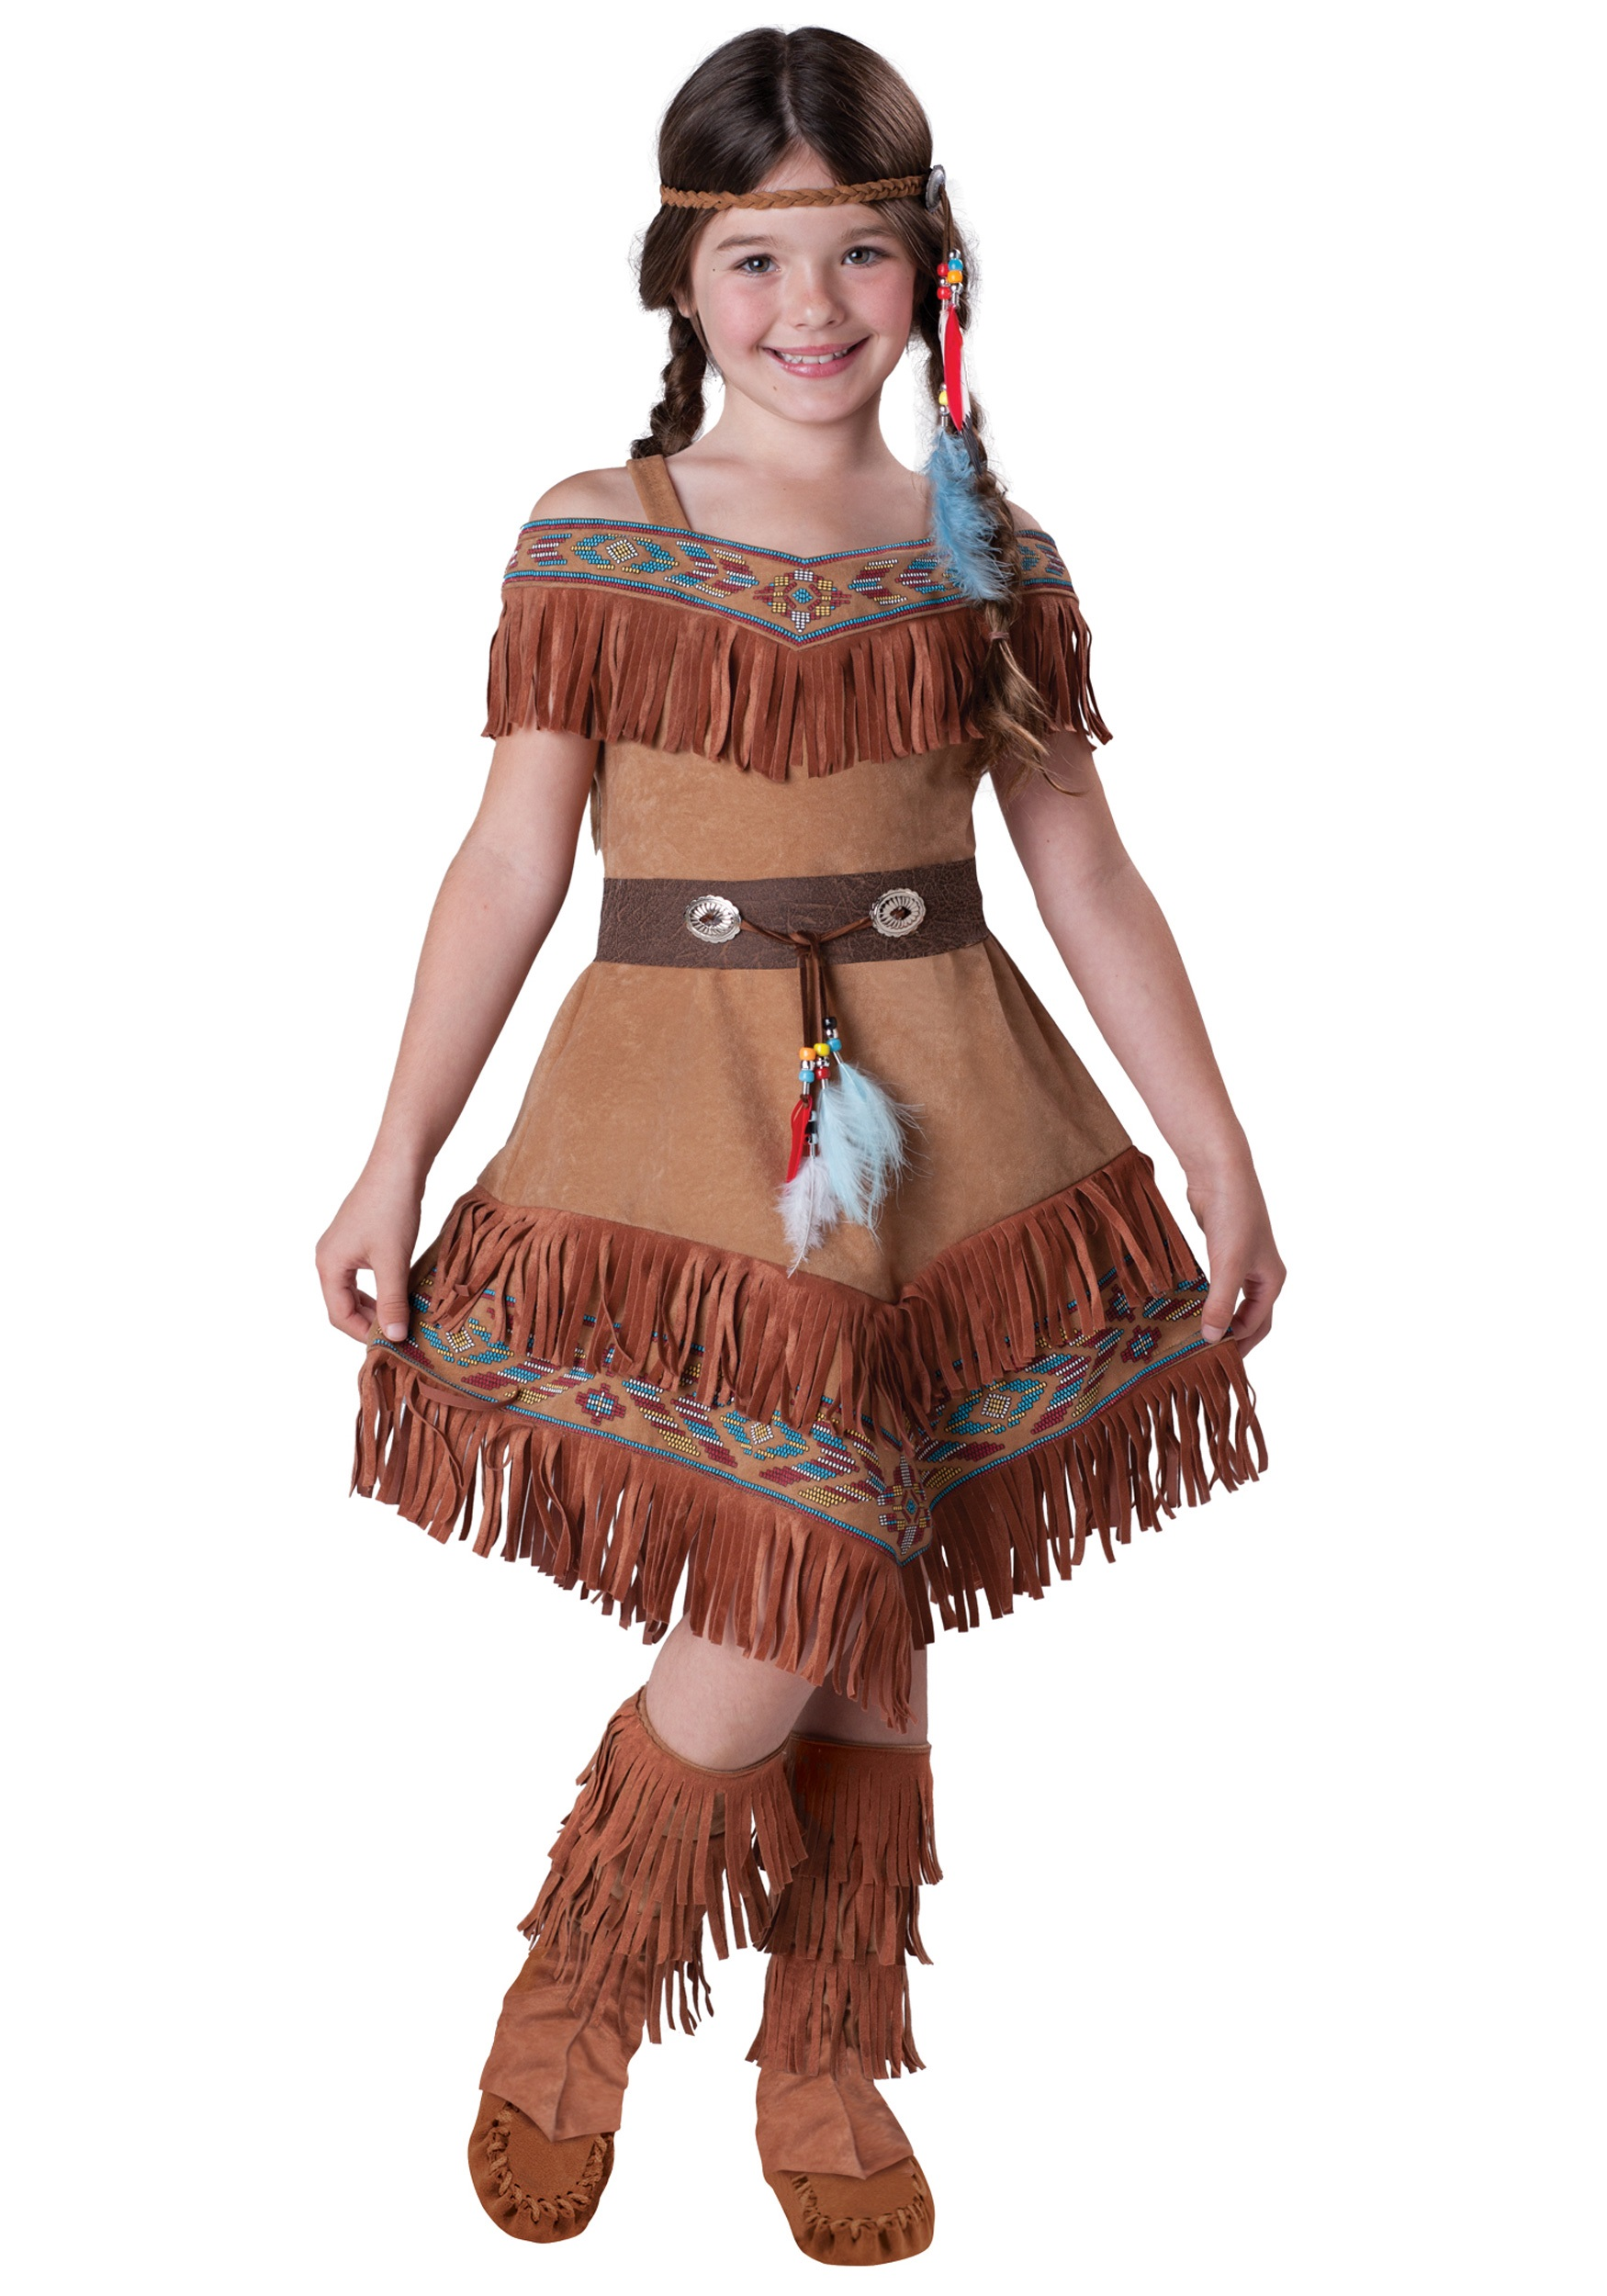 ... child indian maiden costume · women s pocahontas ...  sc 1 st  Best Kids Costumes & Disney Pocahontas Costume Kids - Best Kids Costumes